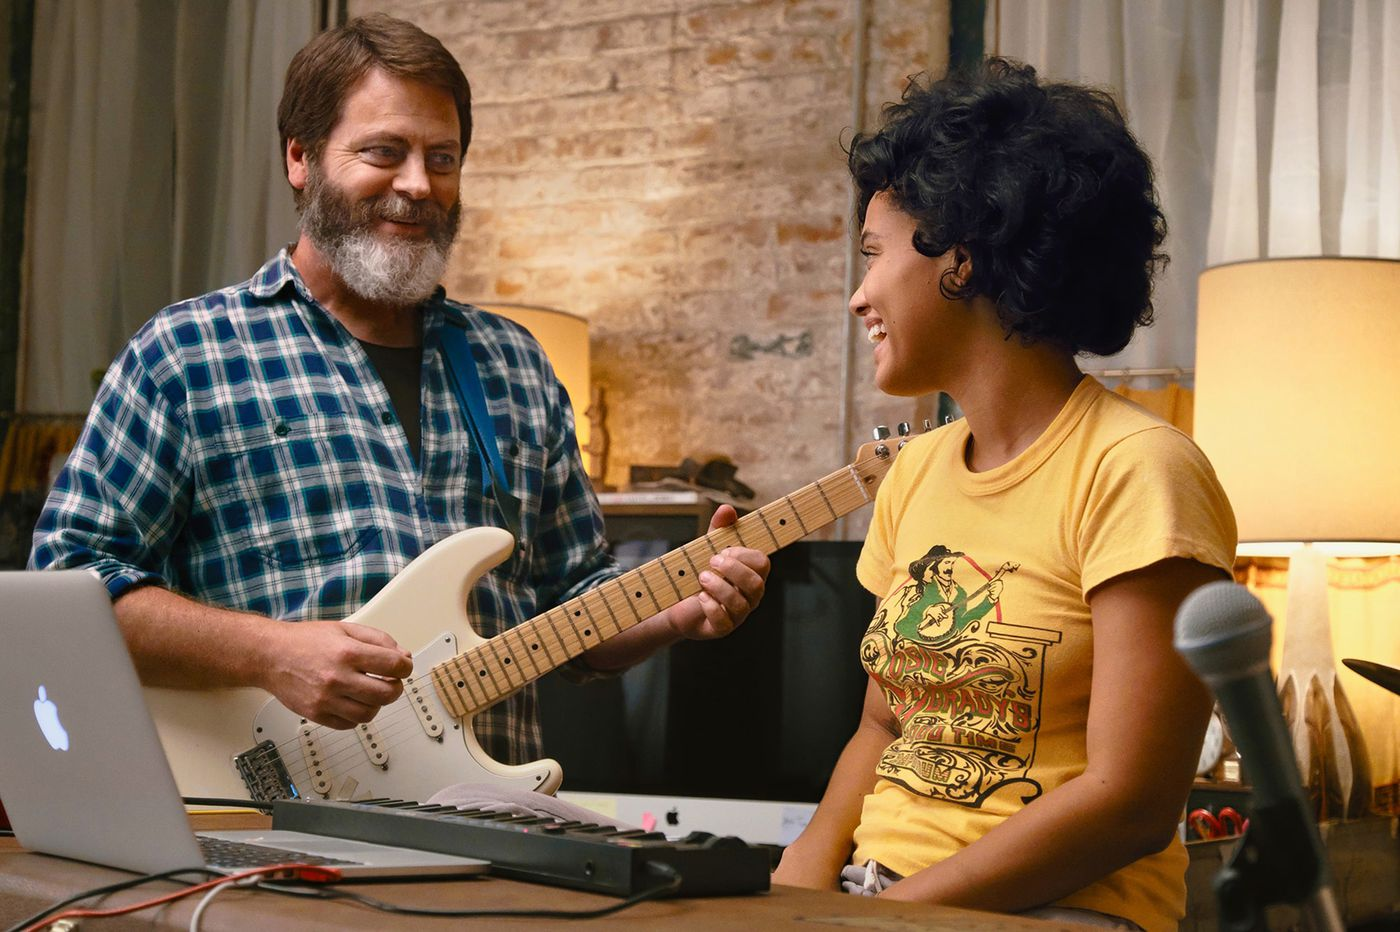 'Hearts Beat Loud': Could Nick Offerman's dad-daughter charmer be the perfect Father's Day movie?